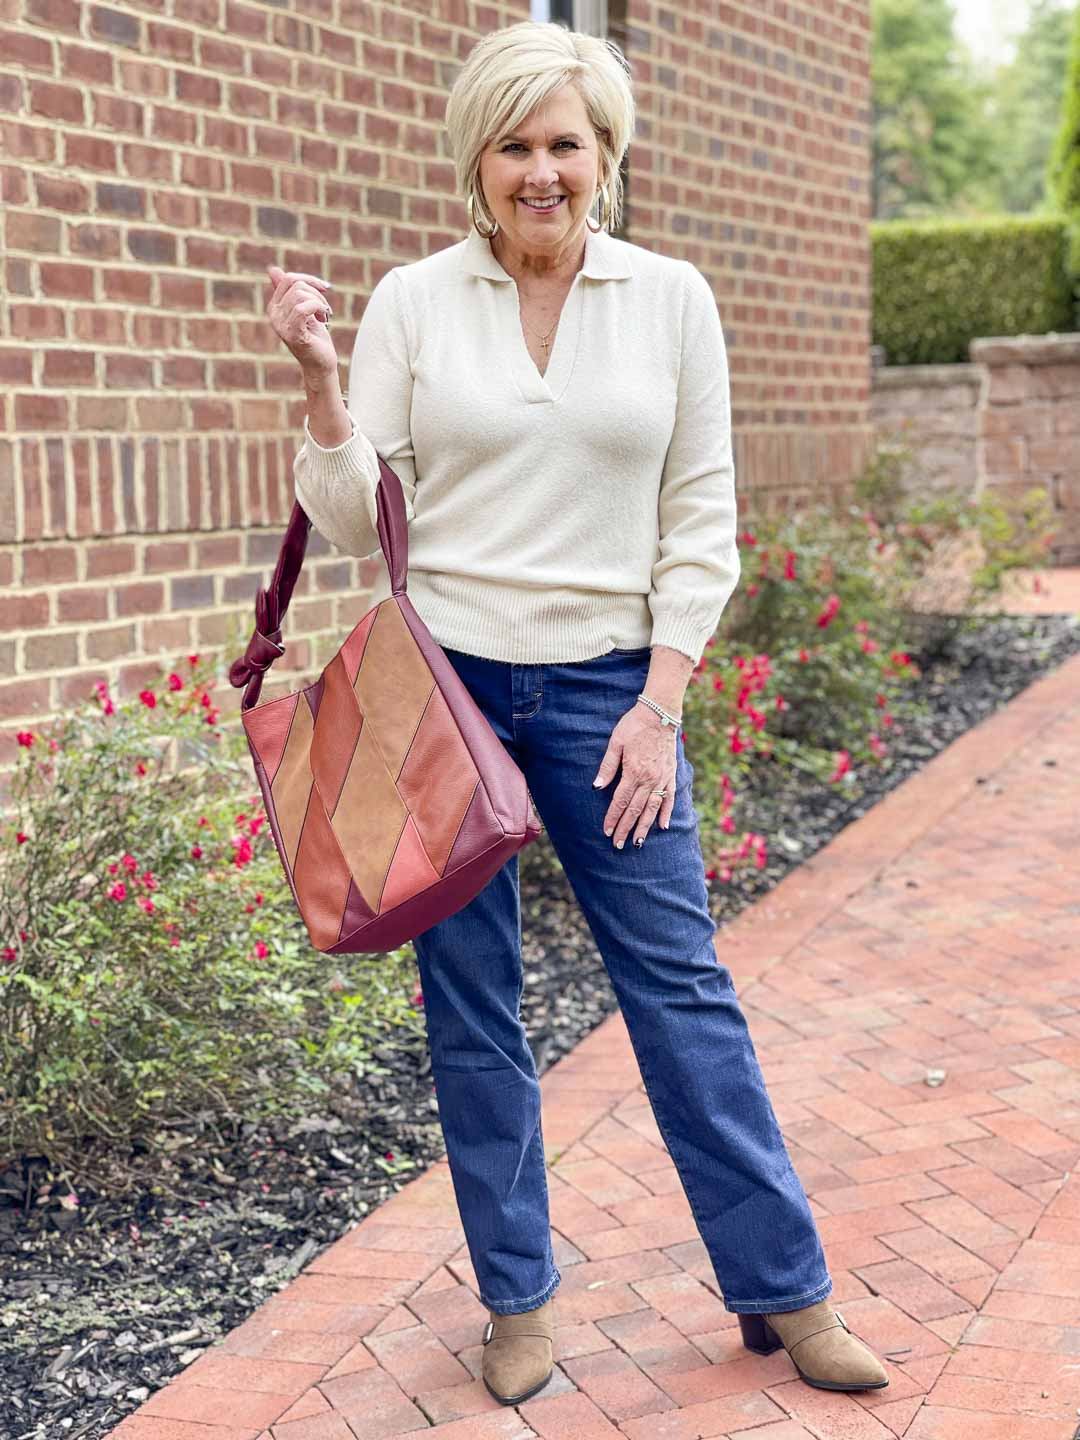 Over 40 Fashion Blogger, Tania Stephens, is showing her recent Walmart haul including this ivory polo sweater, bootcut jeans, and patchwork bag